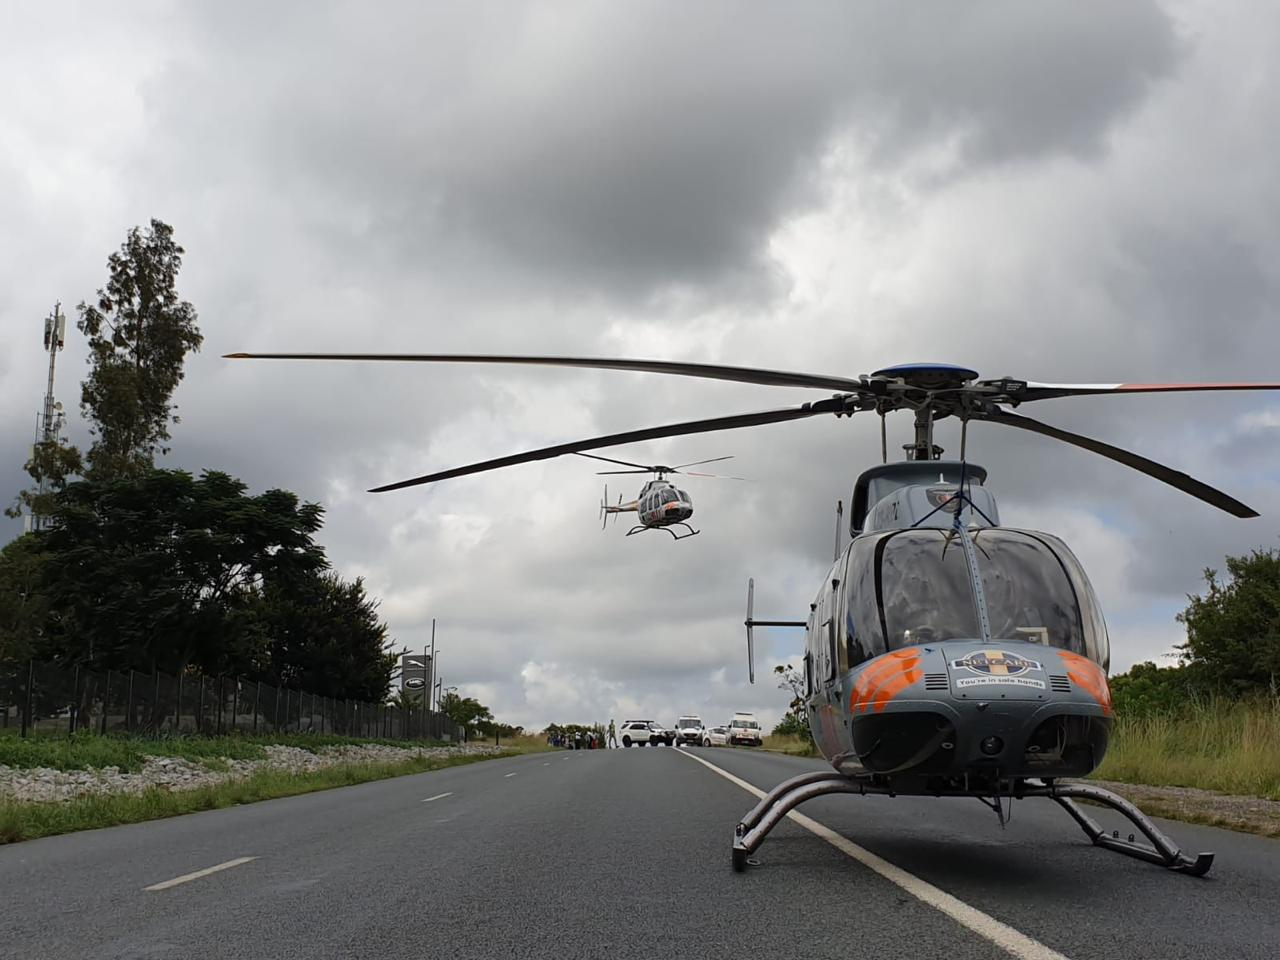 Multiple injured in a serious collision in Lonehill